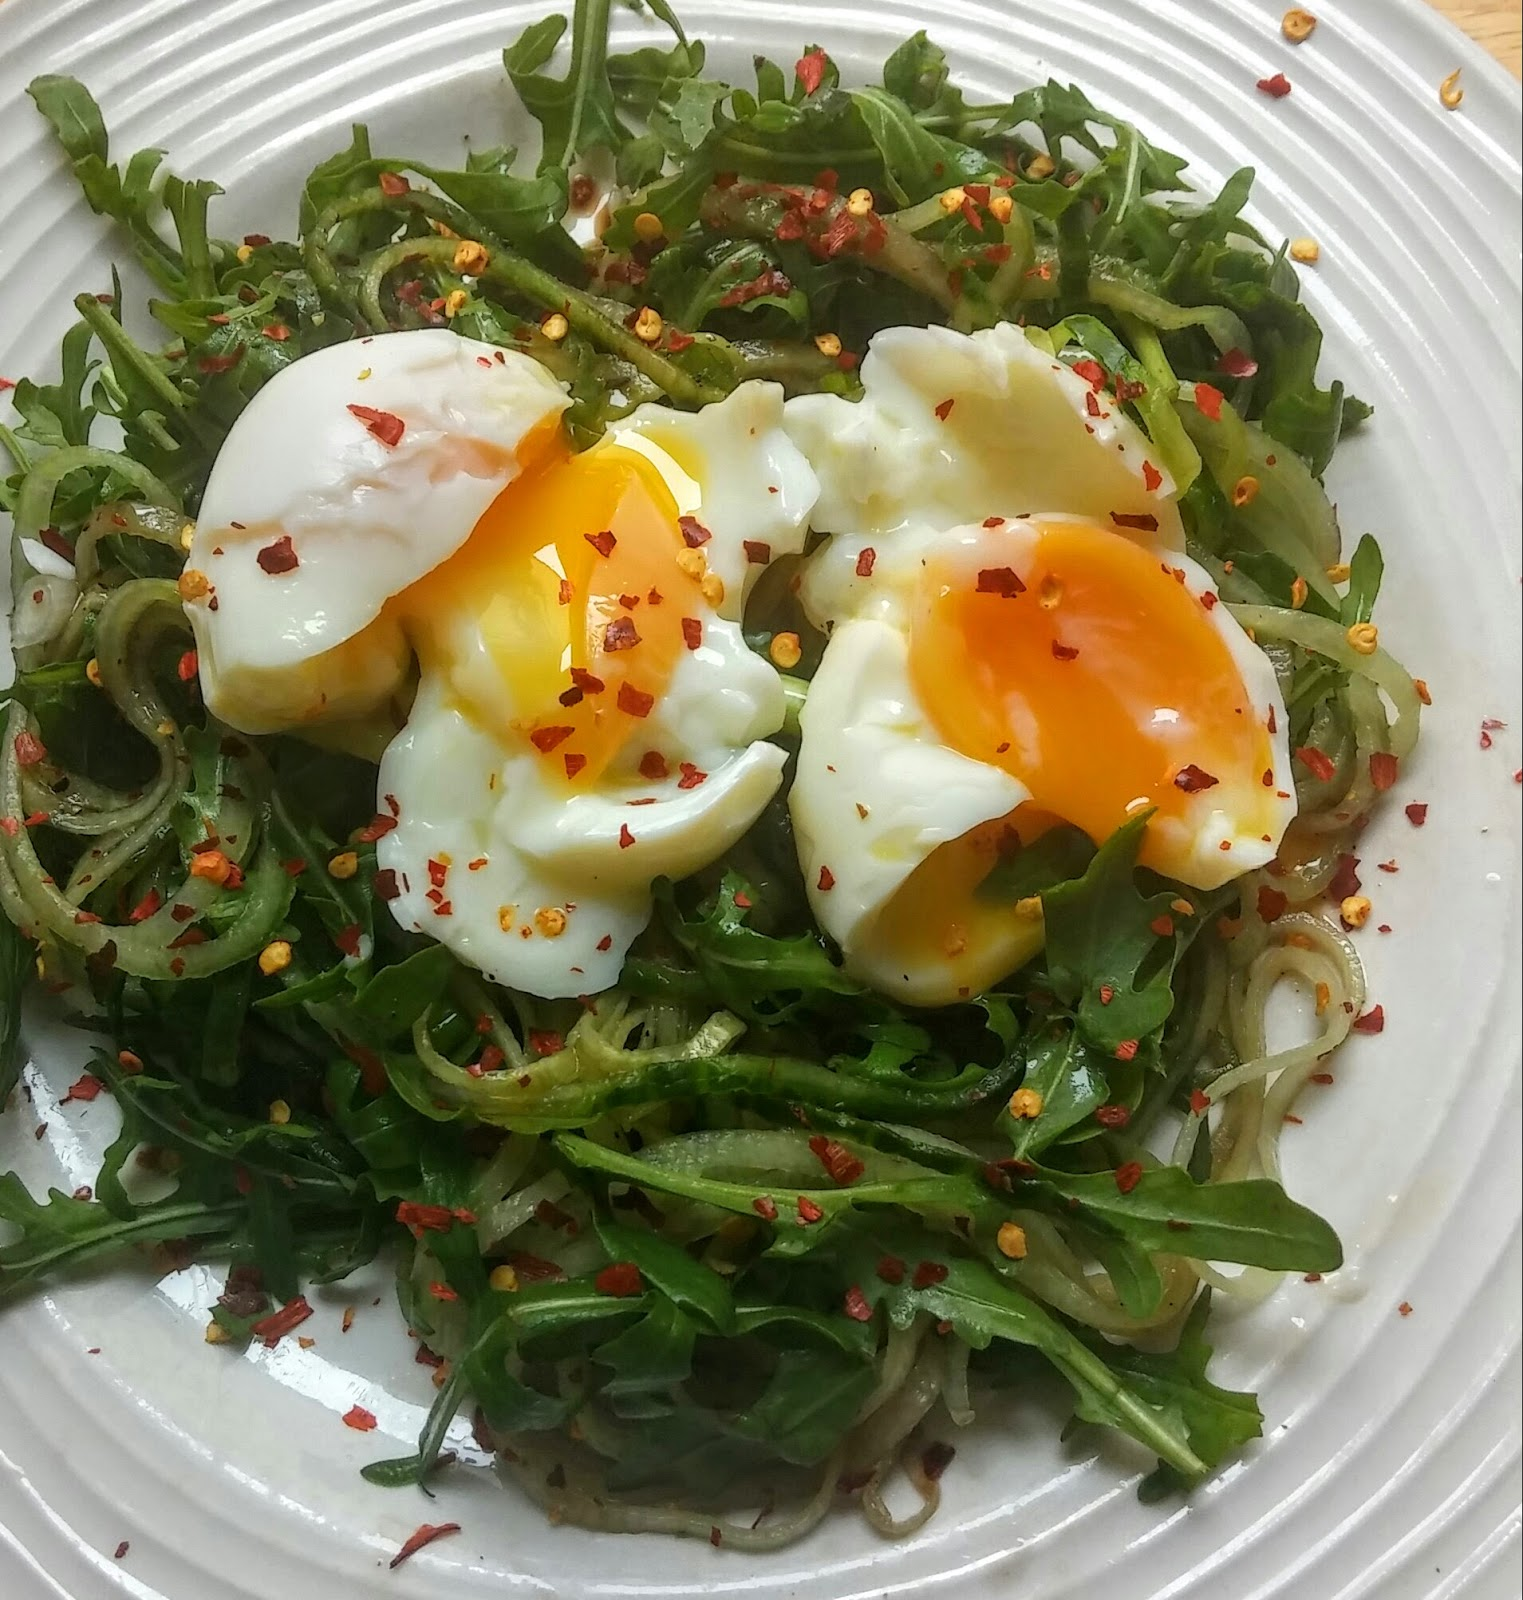 Perfectly cooked boiled eggs with runny yolks on a bed of spiralized cucumber combined with rocket in a hot and sour dressing